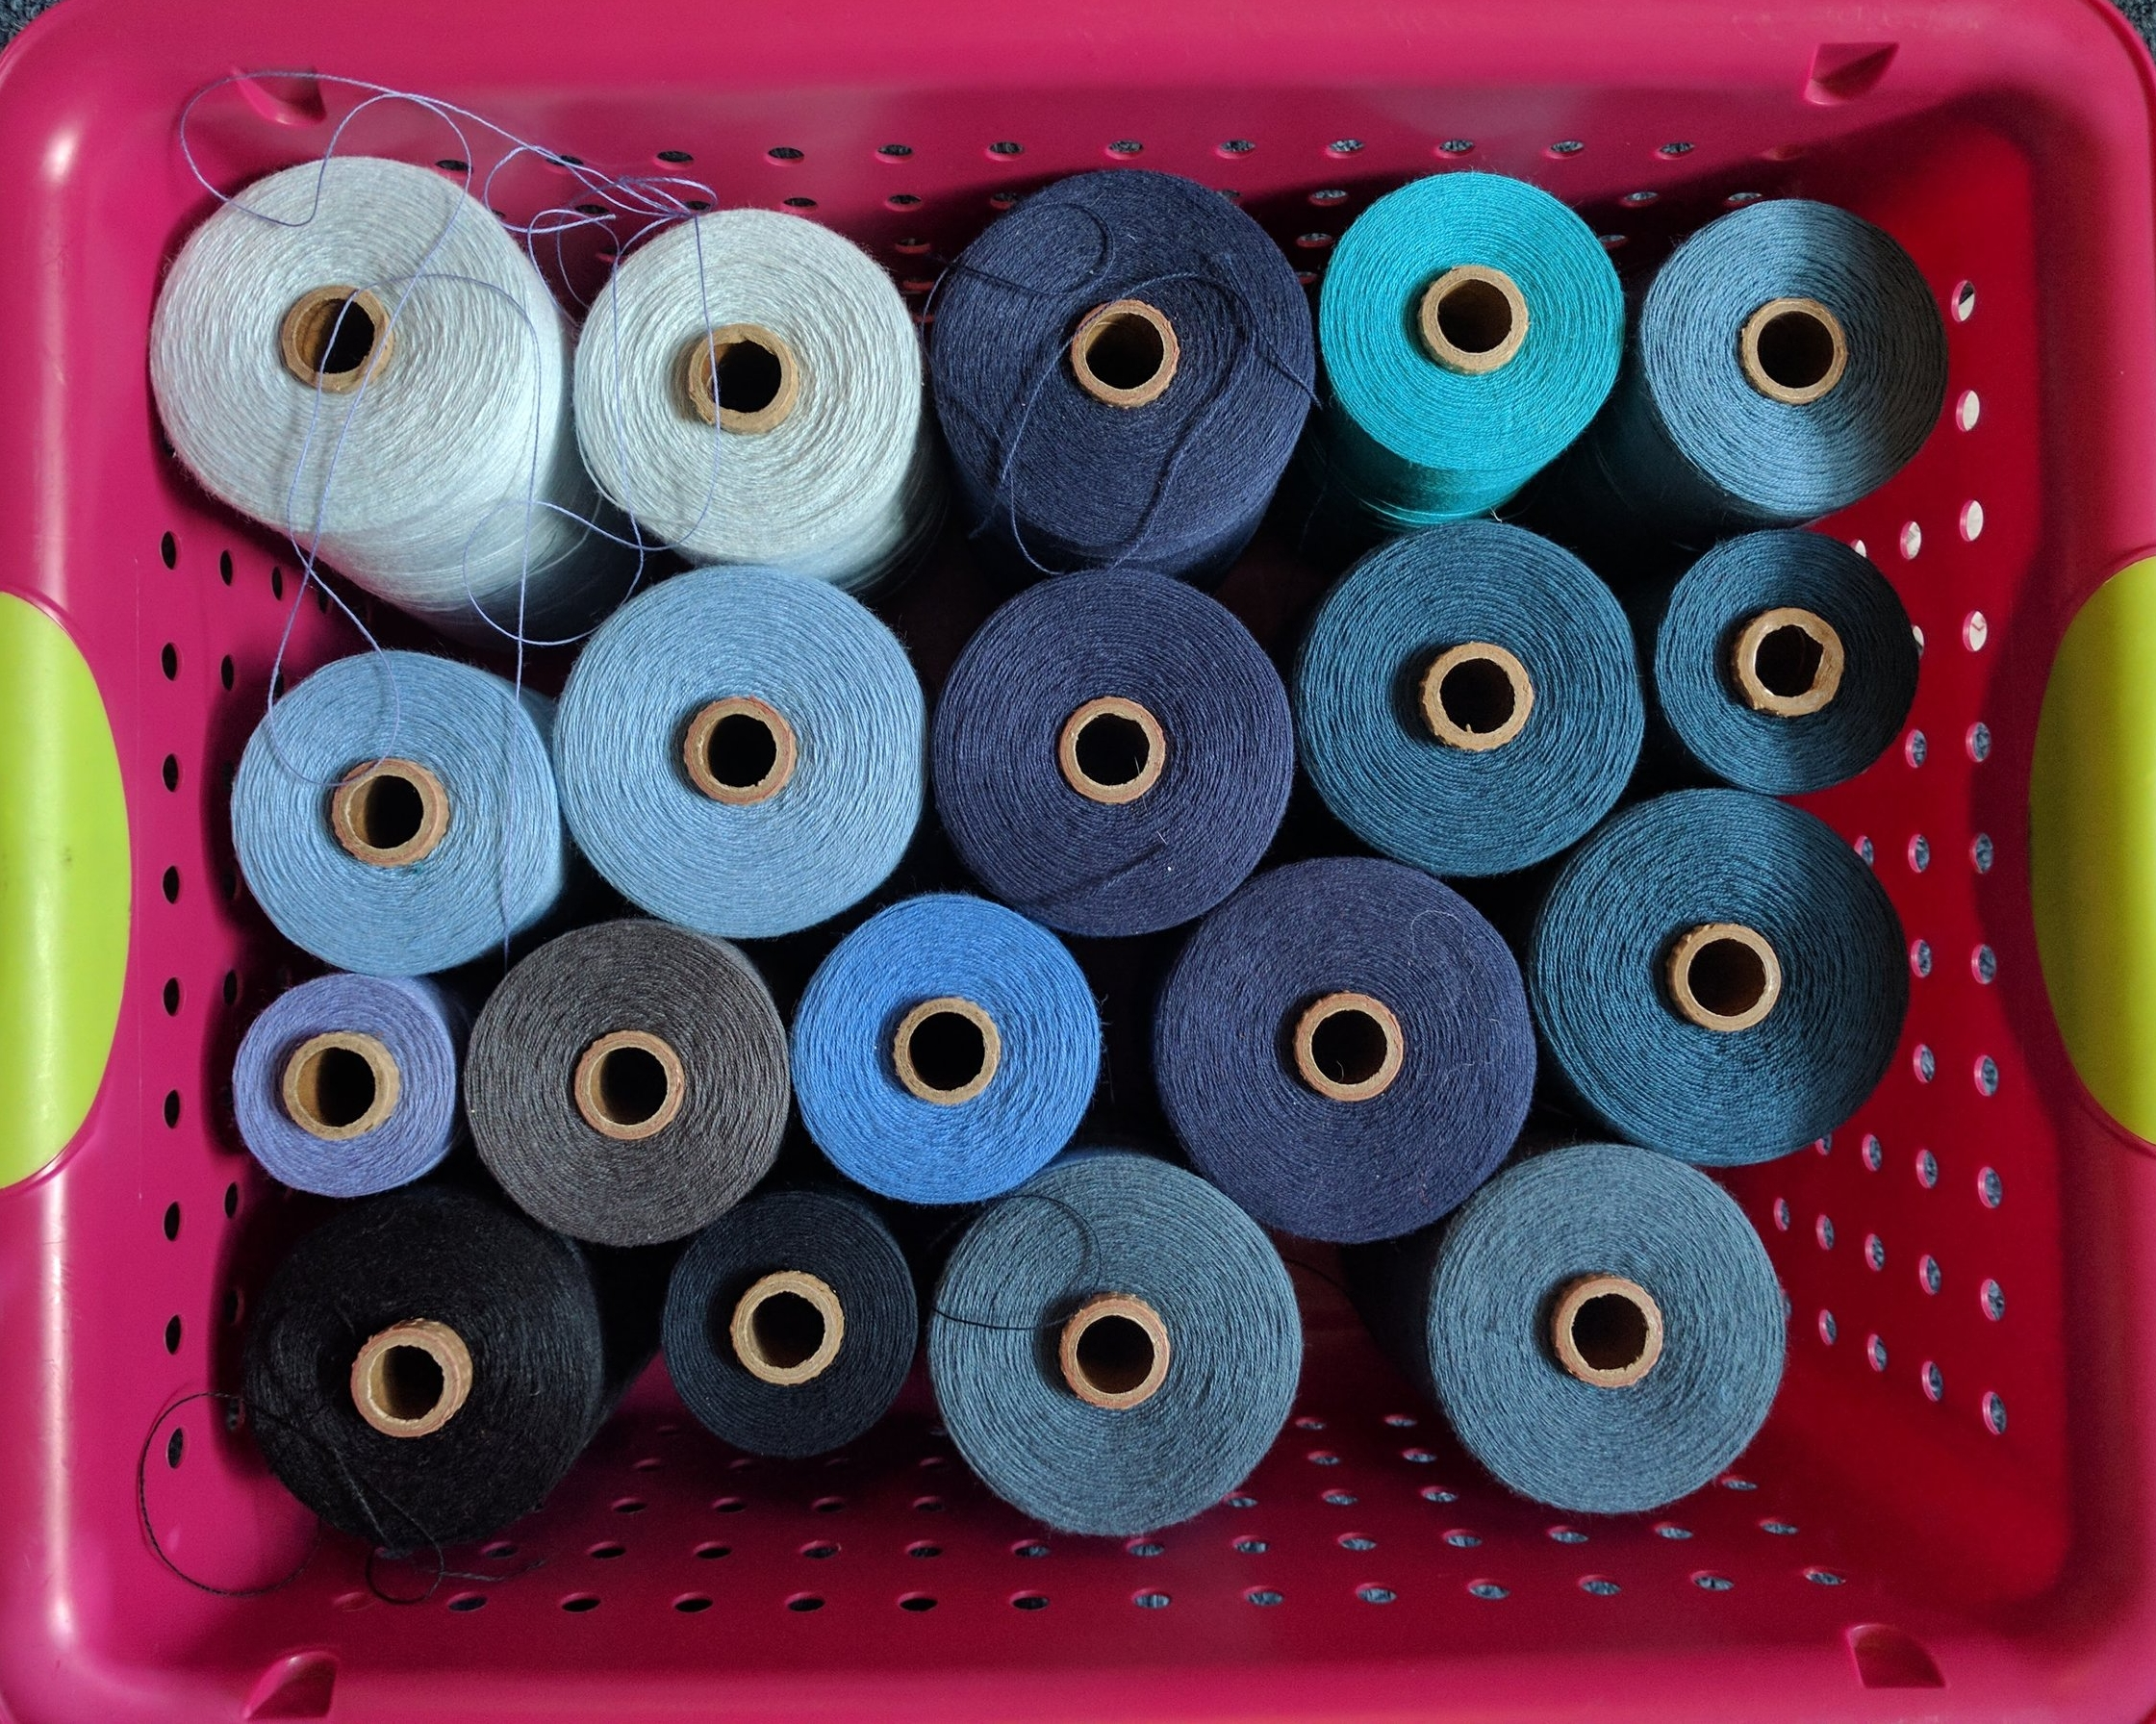 Then there is counting - In order to organize the yarn into a warp, we wind it onto the warping reel. This ensures the yarn is the right length and in the right order.